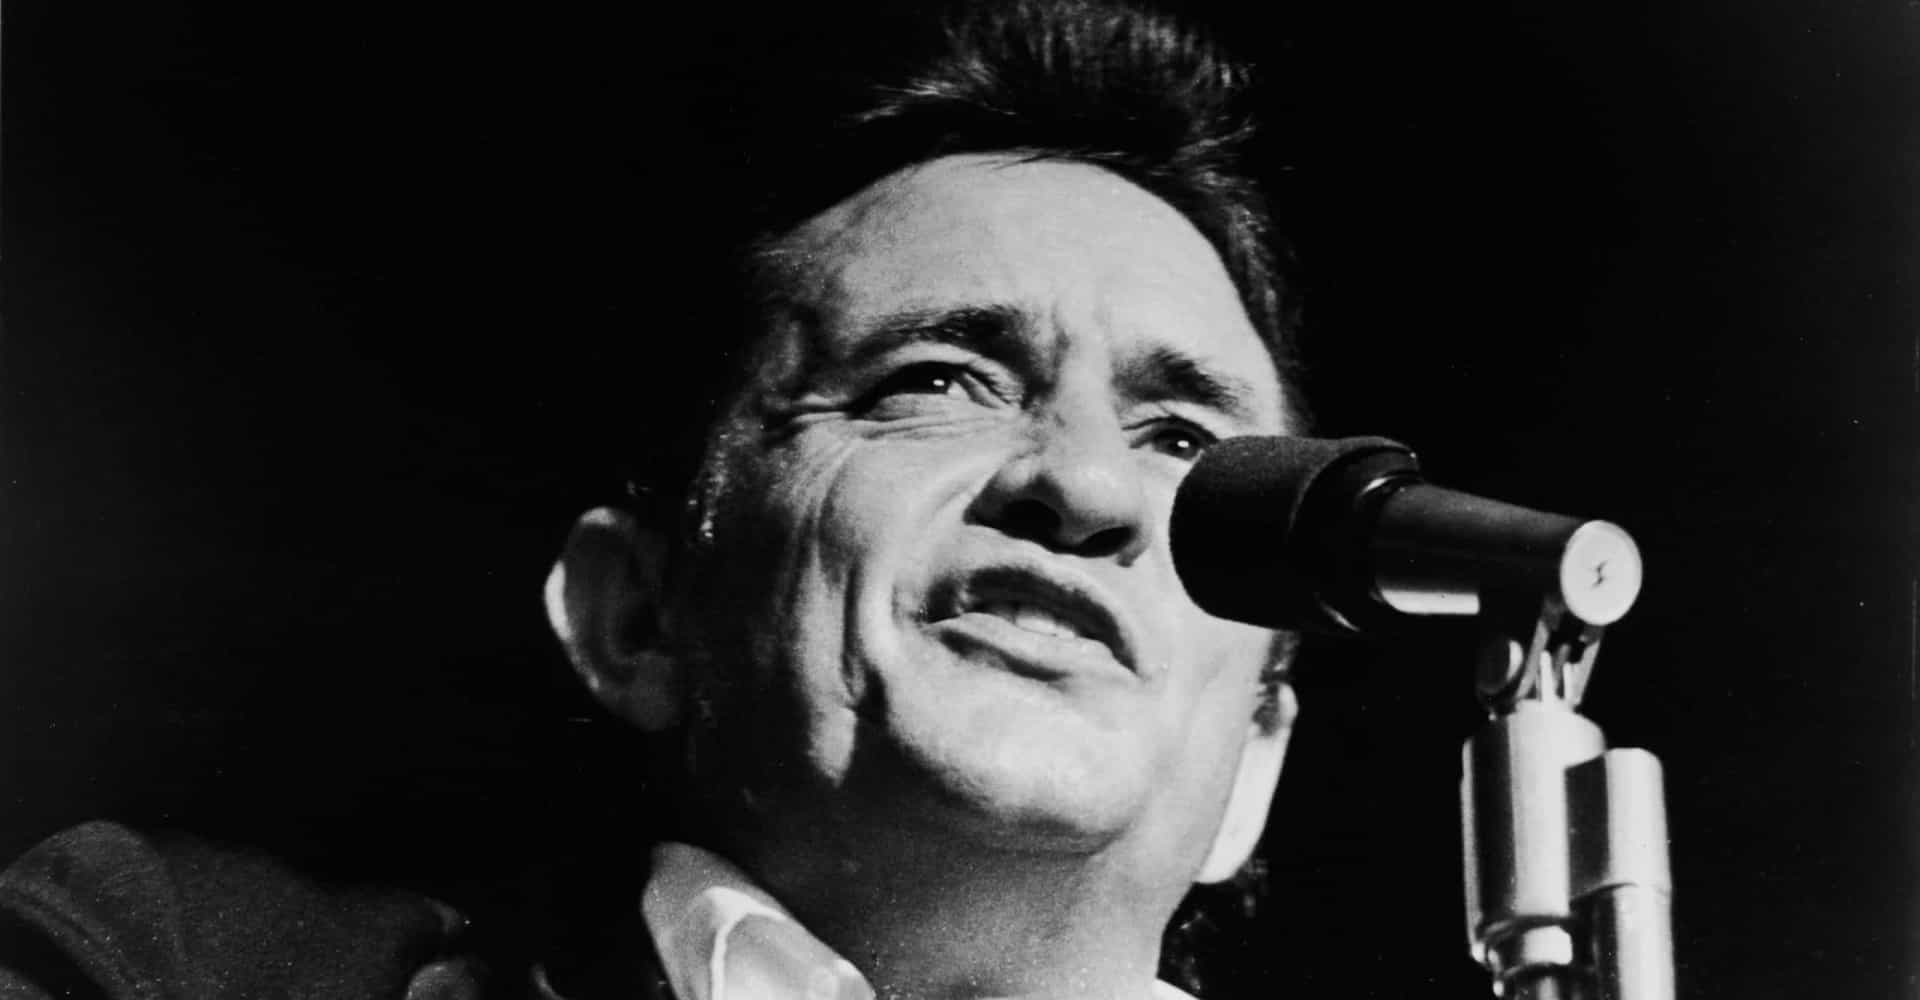 The Man in Black: How well do you know Johnny Cash?